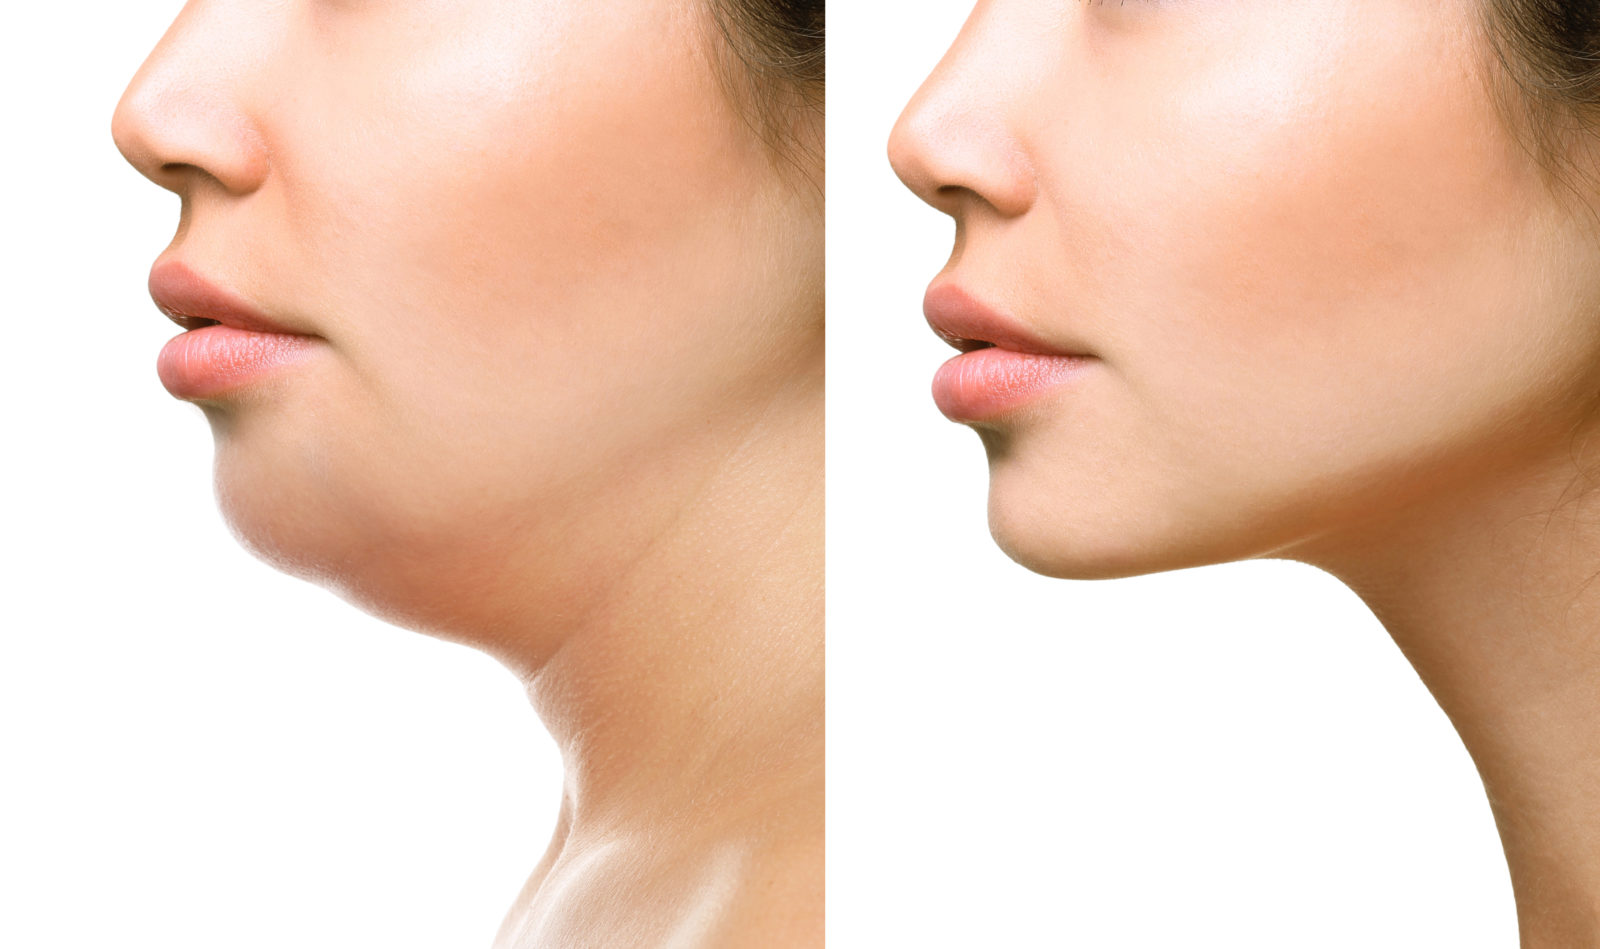 5 Things You Need to Know About Kybella Injections